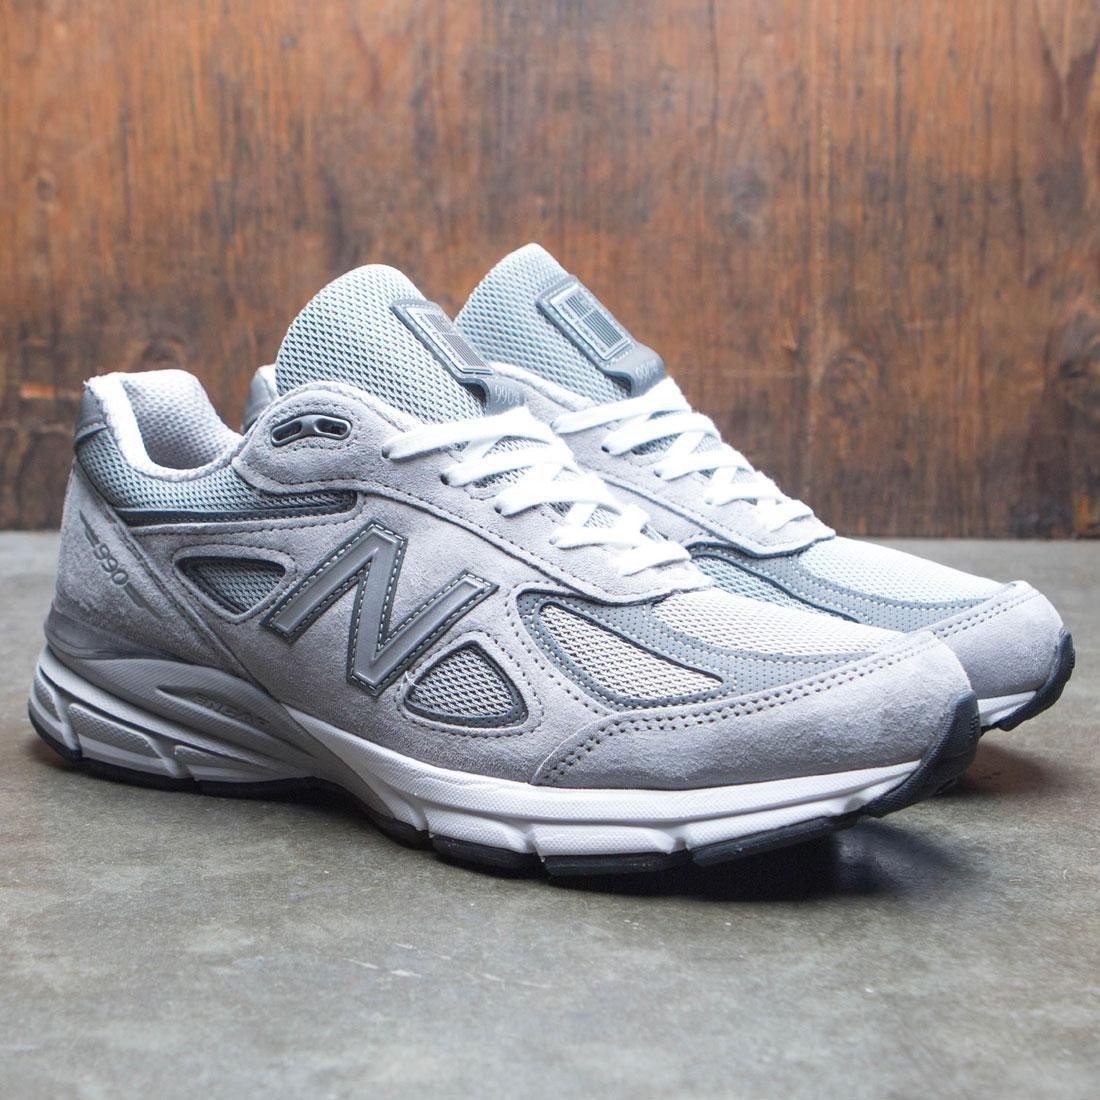 new concept 2d2cf 35b12 New Balance Men 990v4 M990GL4 Width 2E Wide - Made In USA (gray /  castlerock)